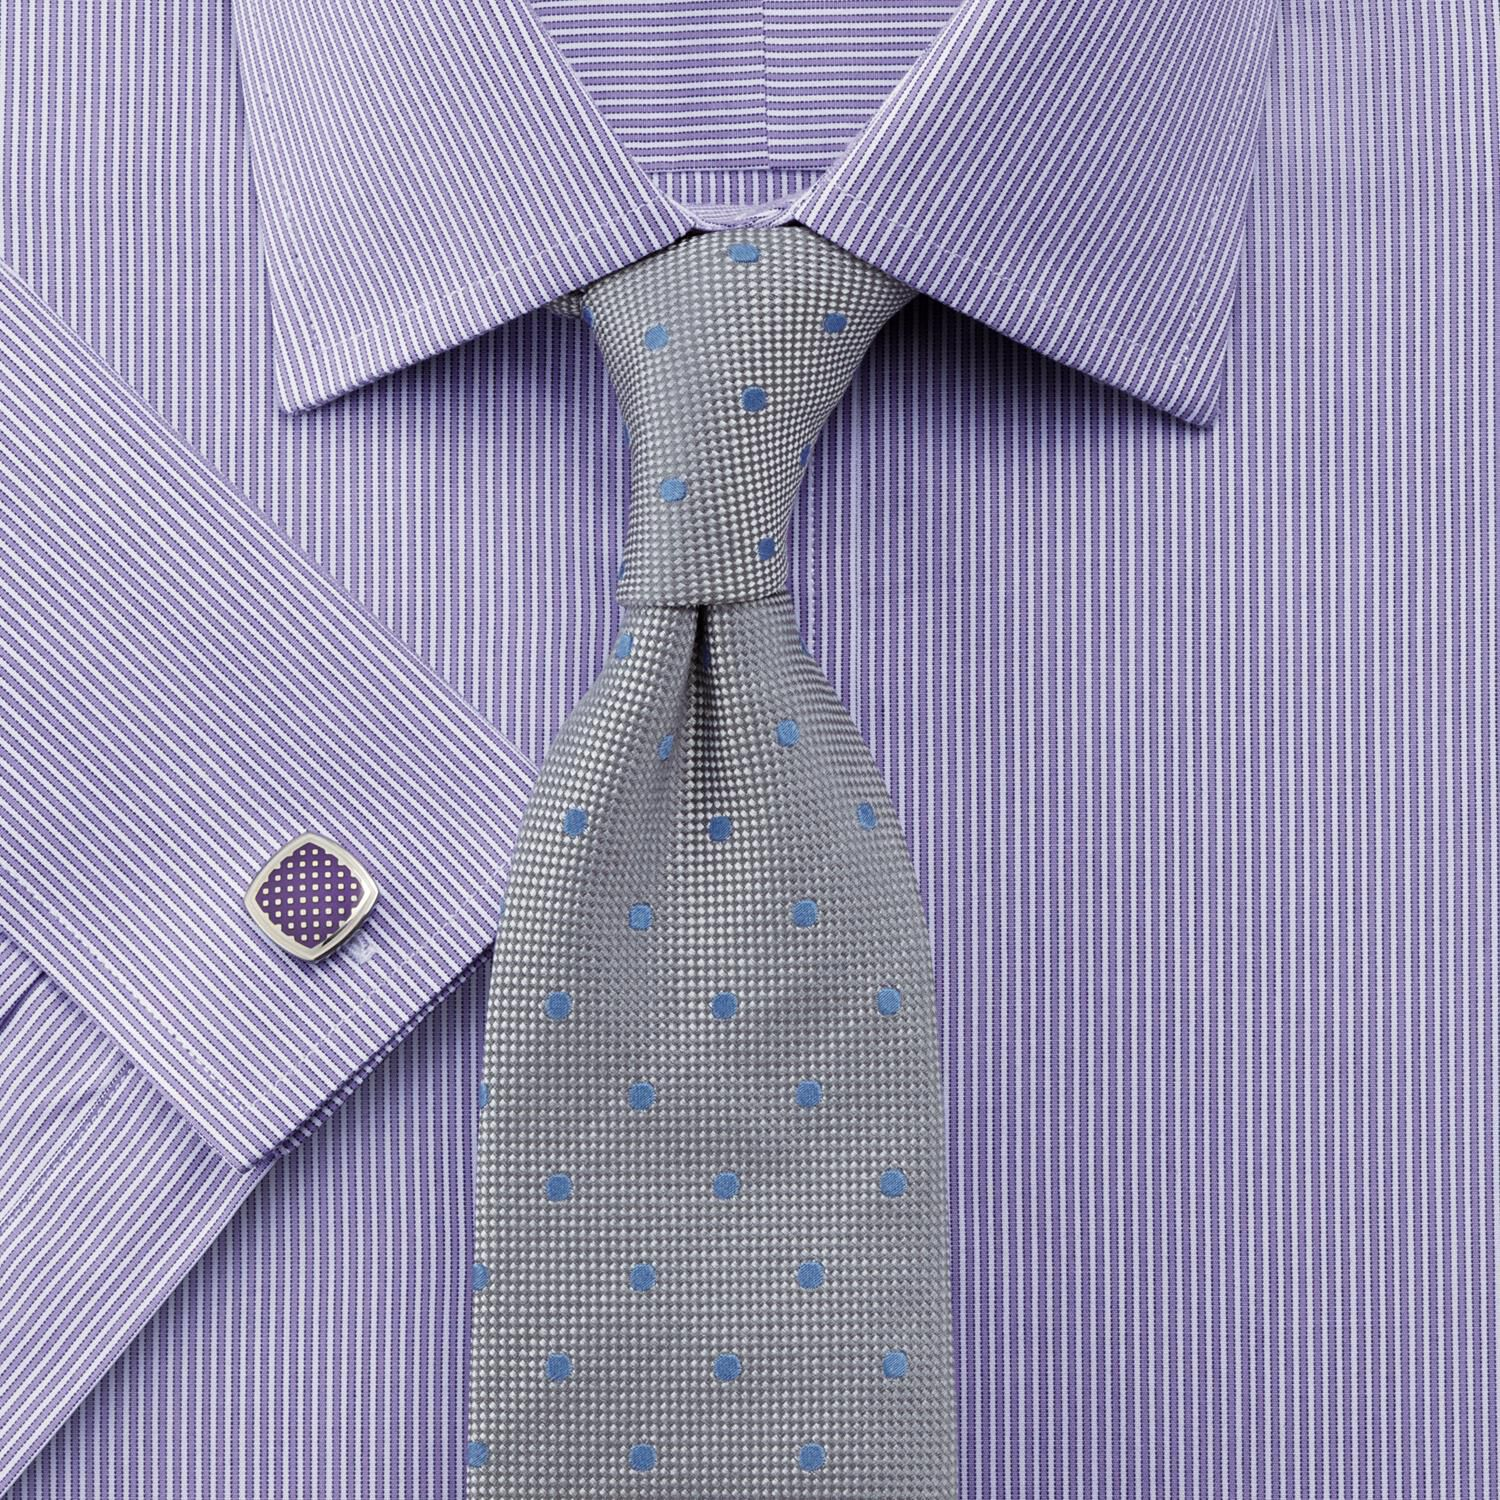 Classic Fit Bengal Stripe Lilac Cotton Formal Shirt Single Cuff Size 15.5/37 by Charles Tyrwhitt